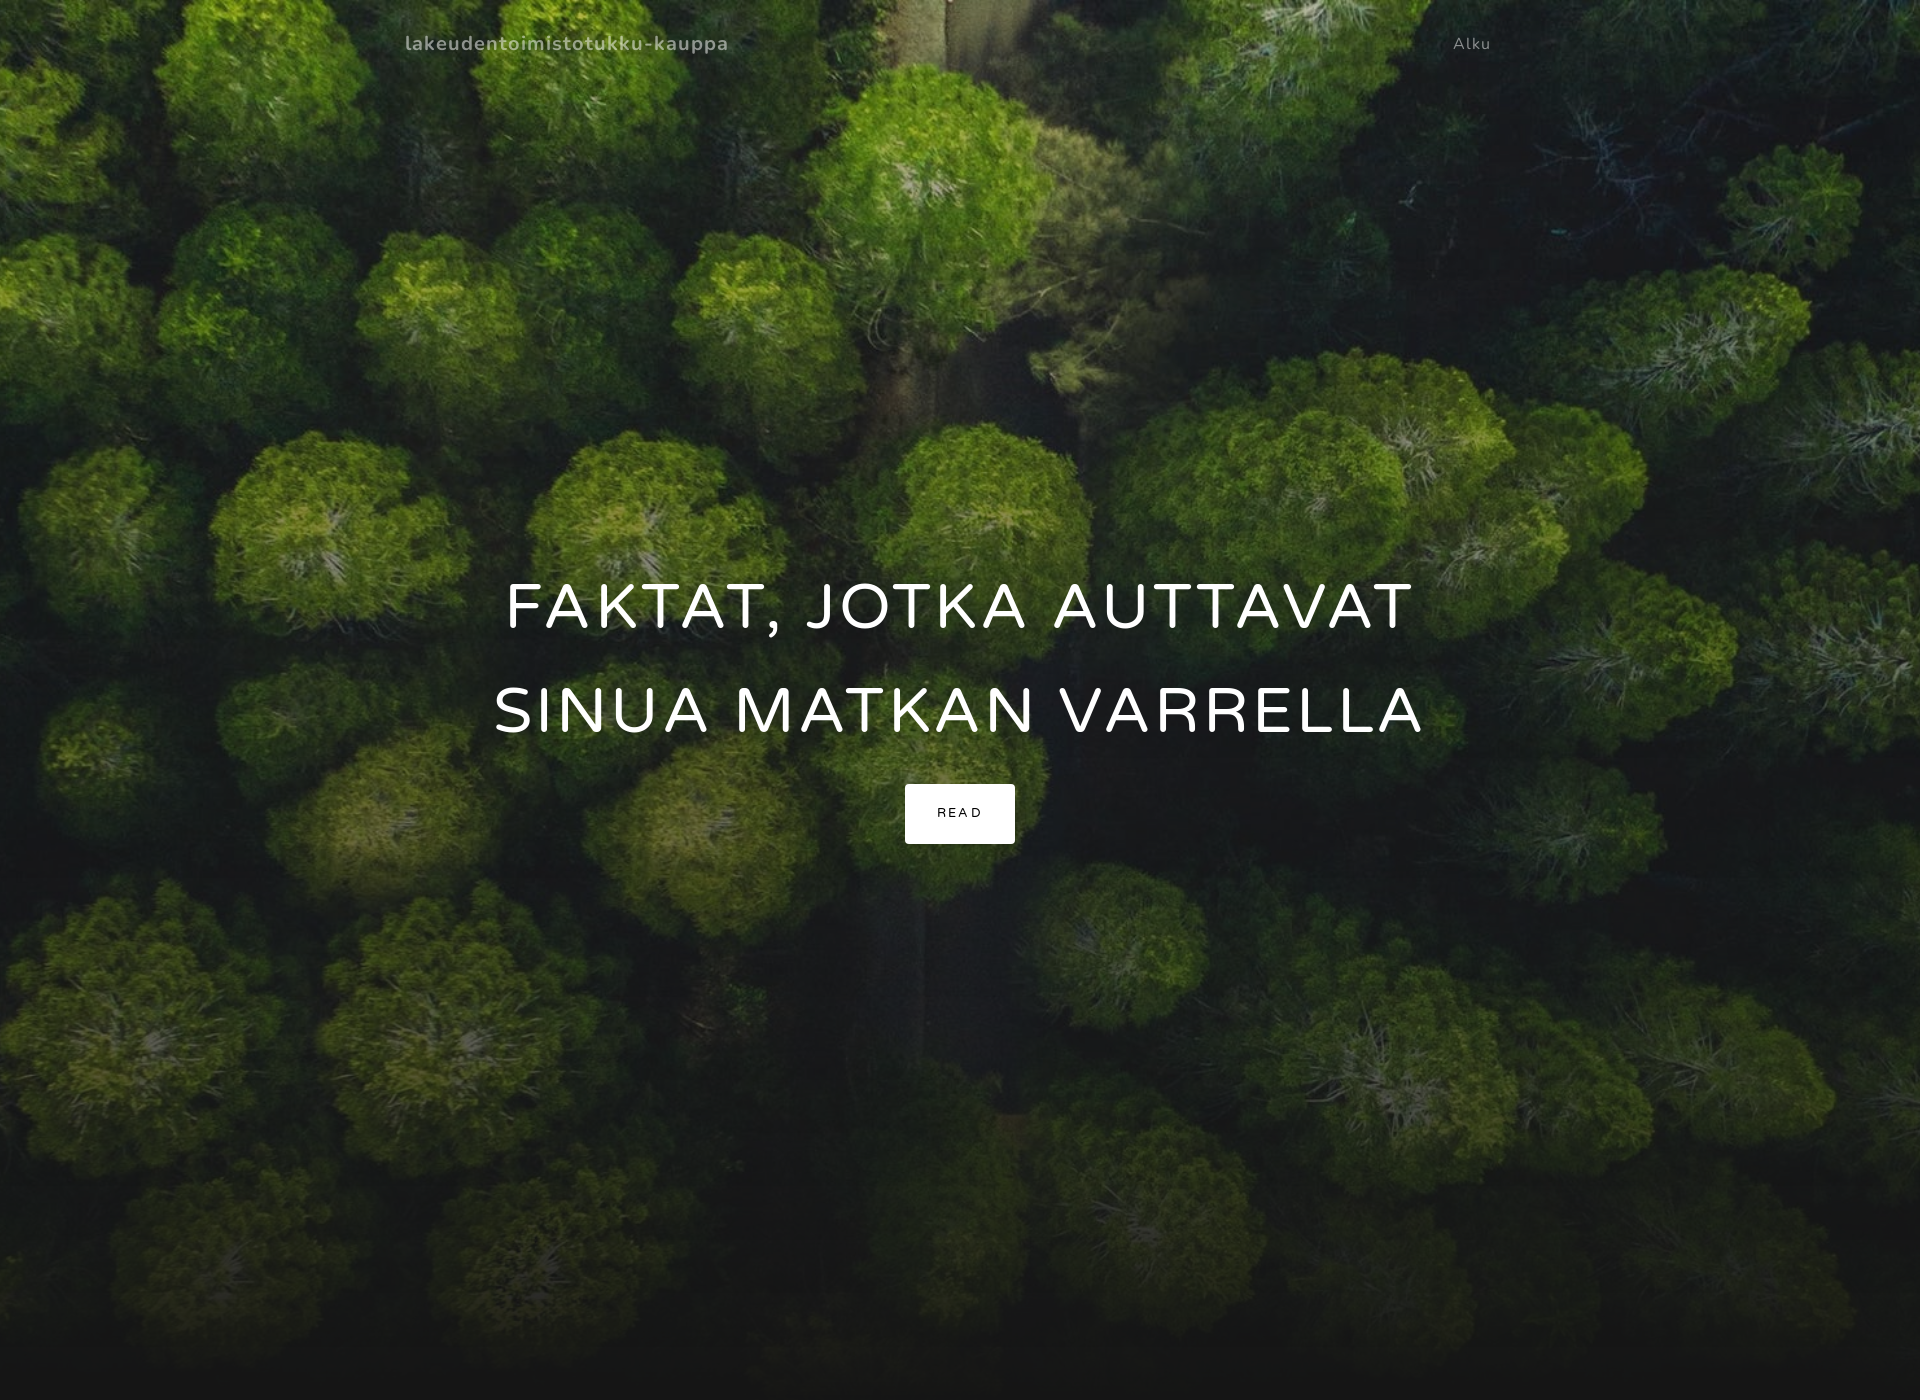 Screenshot for lakeudentoimistotukku-kauppa.fi